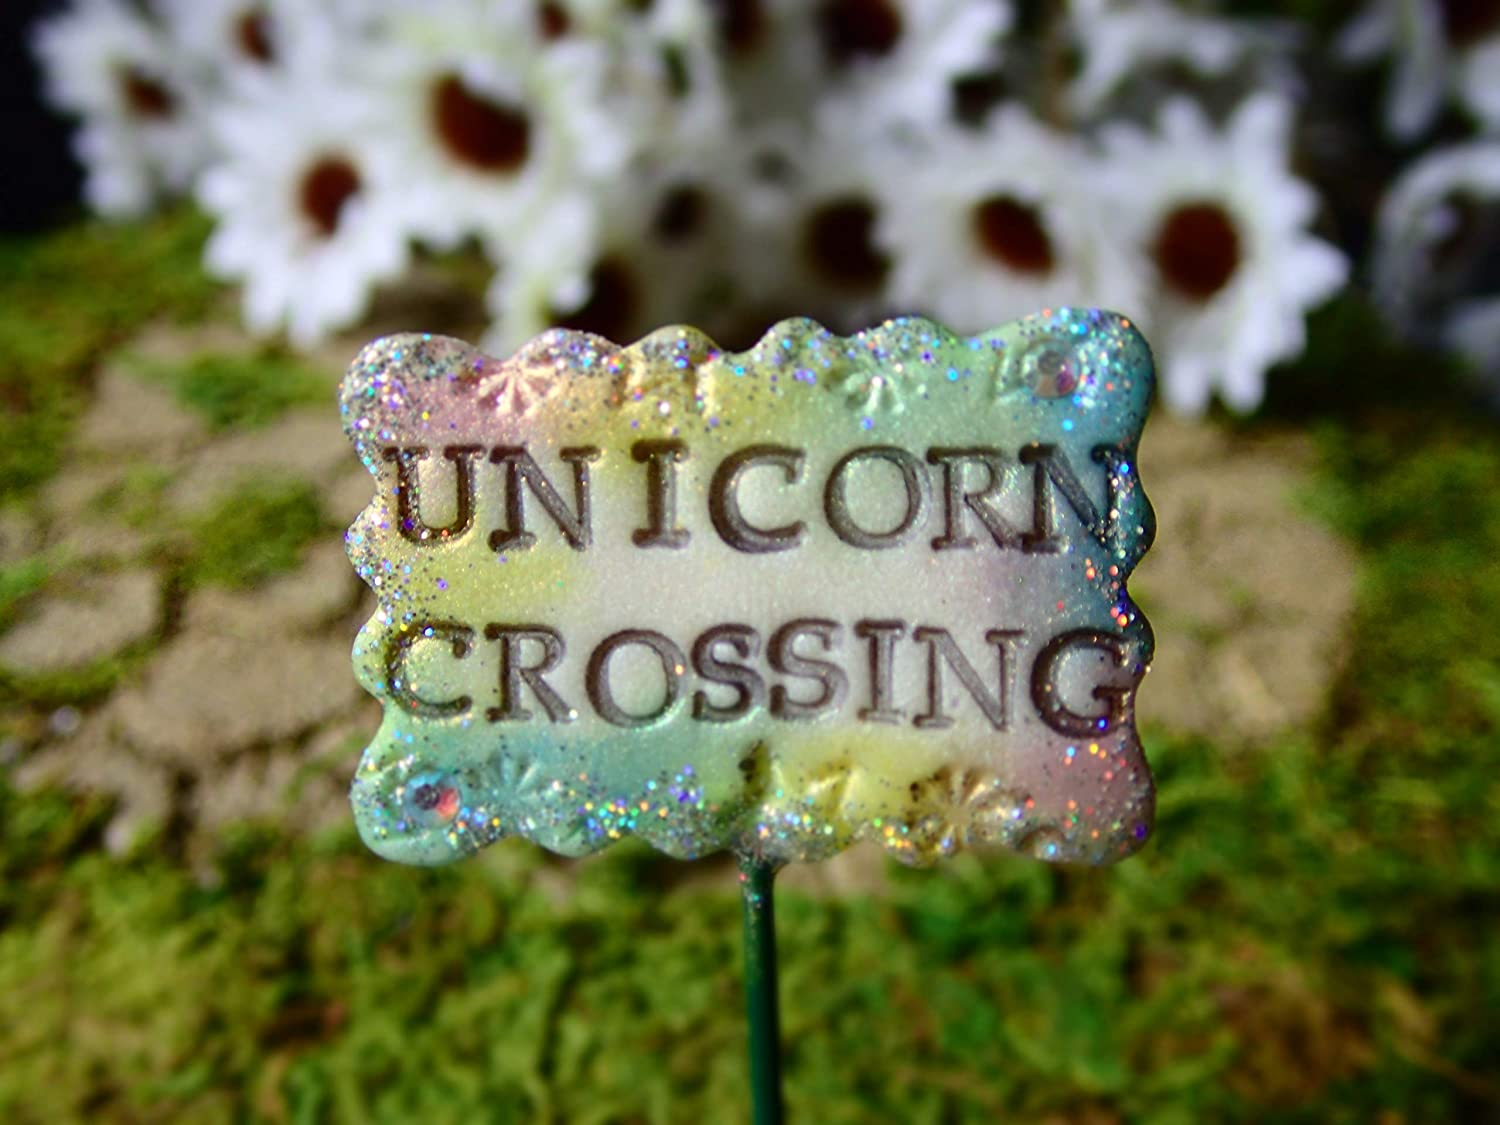 Miniature Fairy Garden Unicorn Decoration, Unicorn Crossing Sign, Mini Garden Planter, Dollhouse, Terrarium Decorations & Accessories